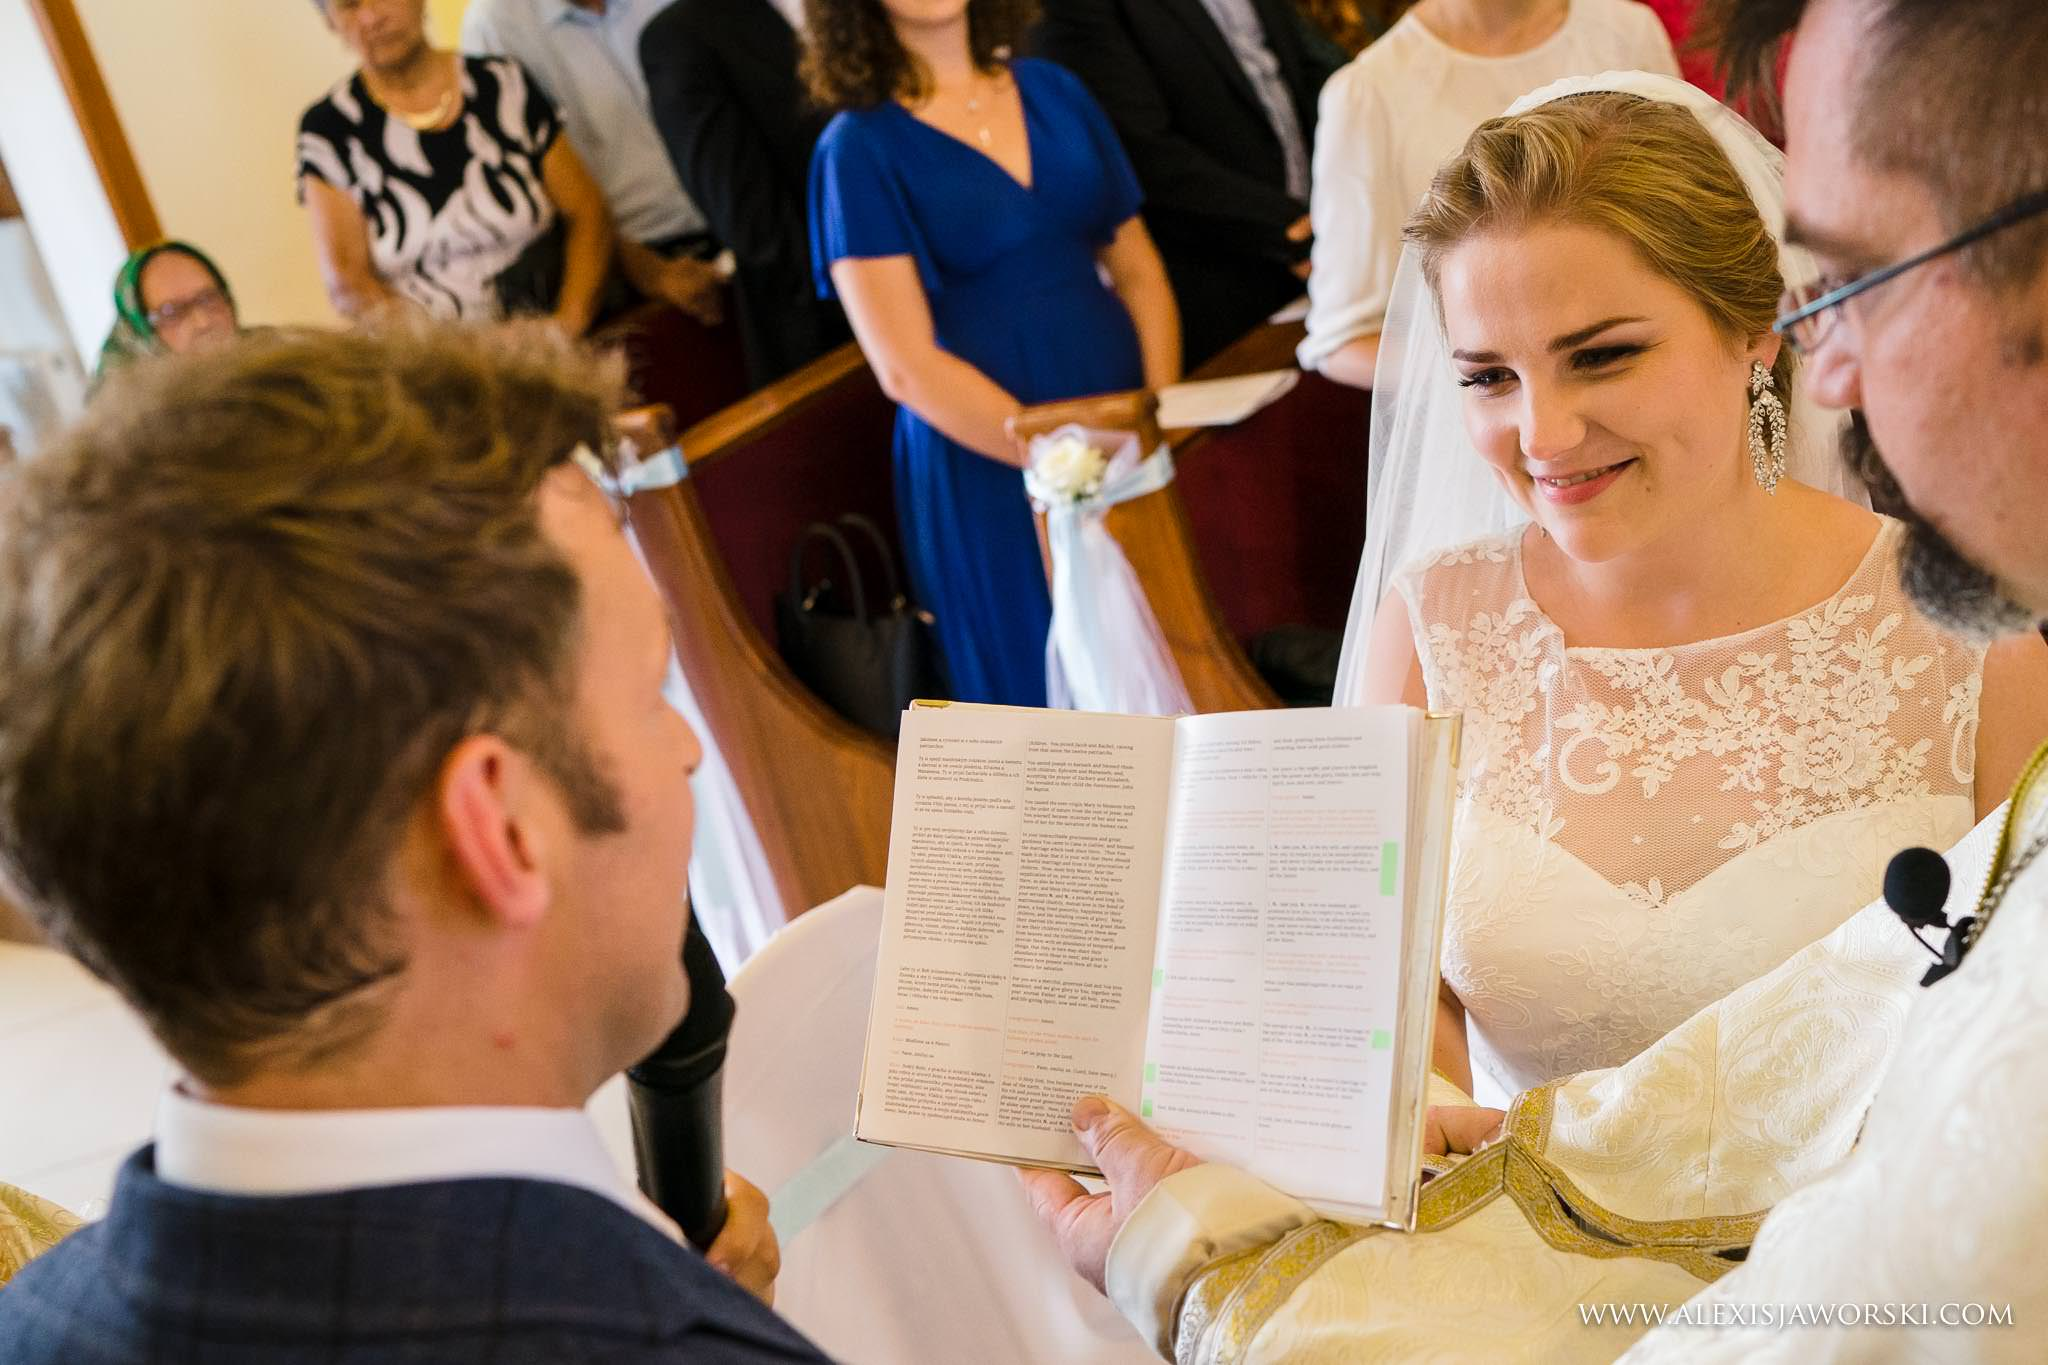 exchnage of vows